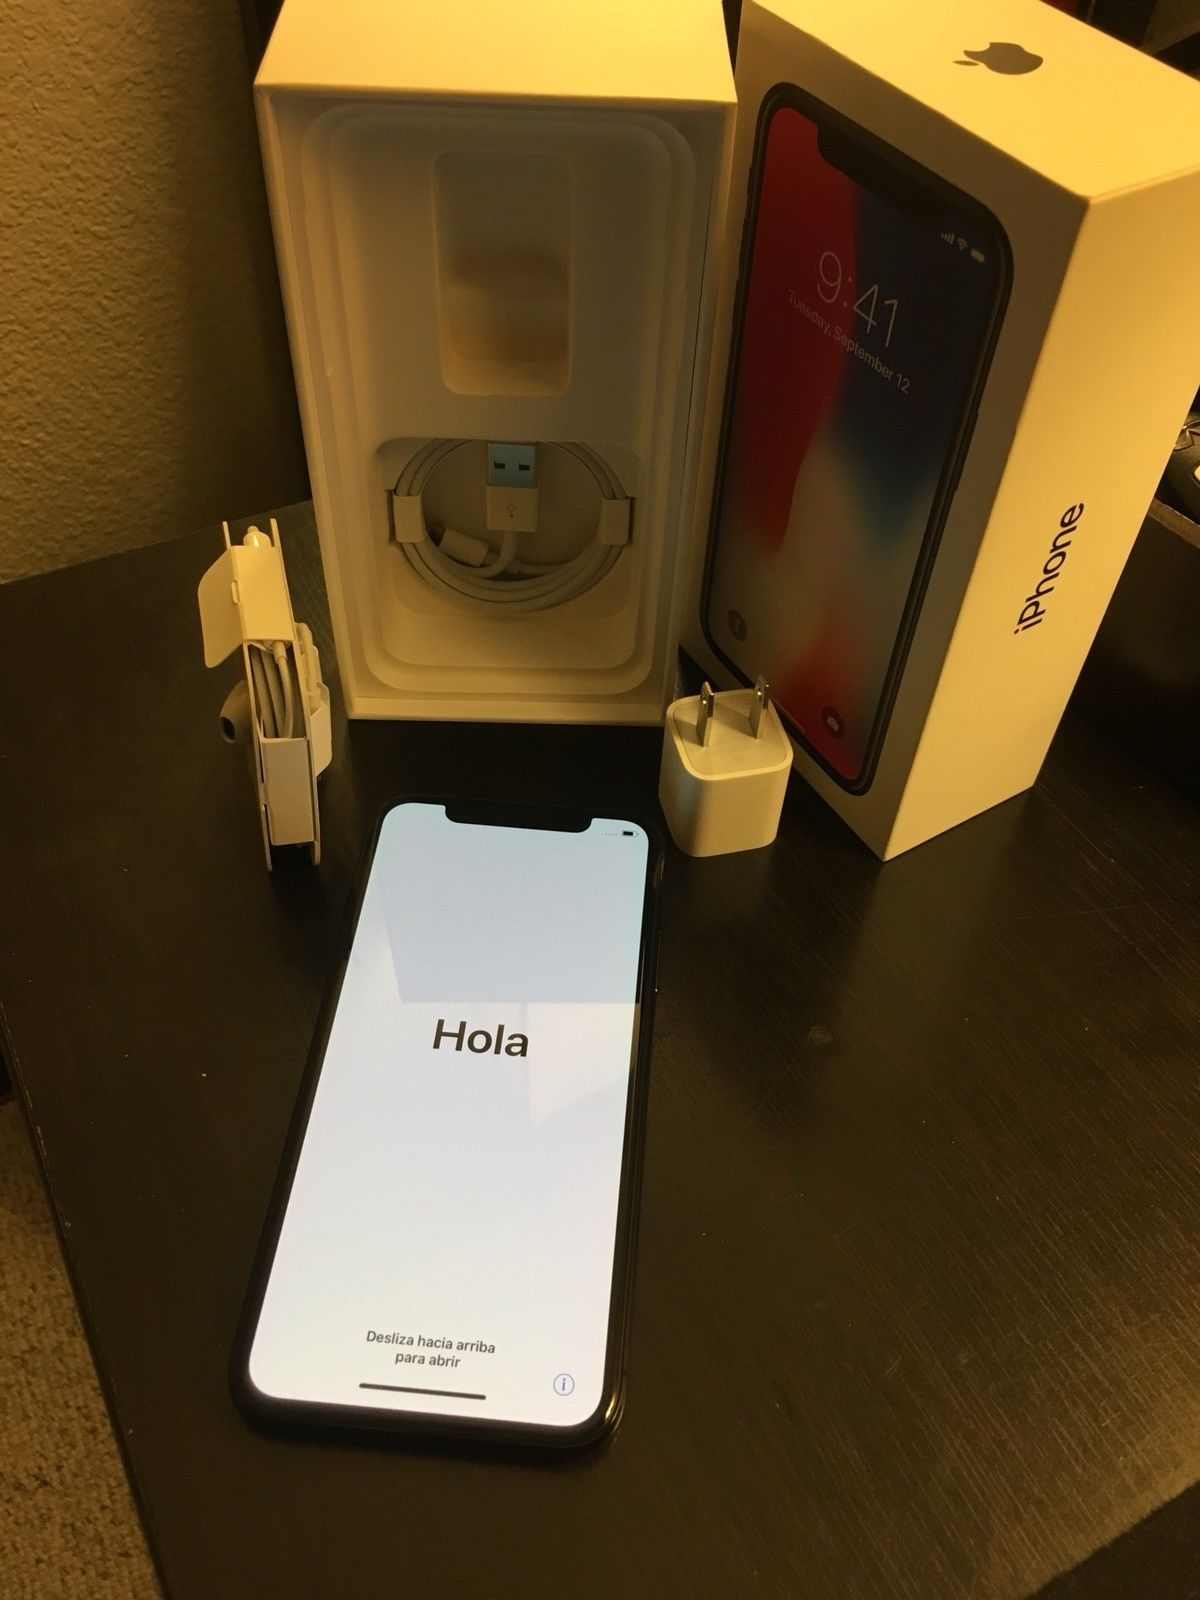 Pin by Ola Faulkner on cheap iphone x for sale | Iphone cost, Cheap